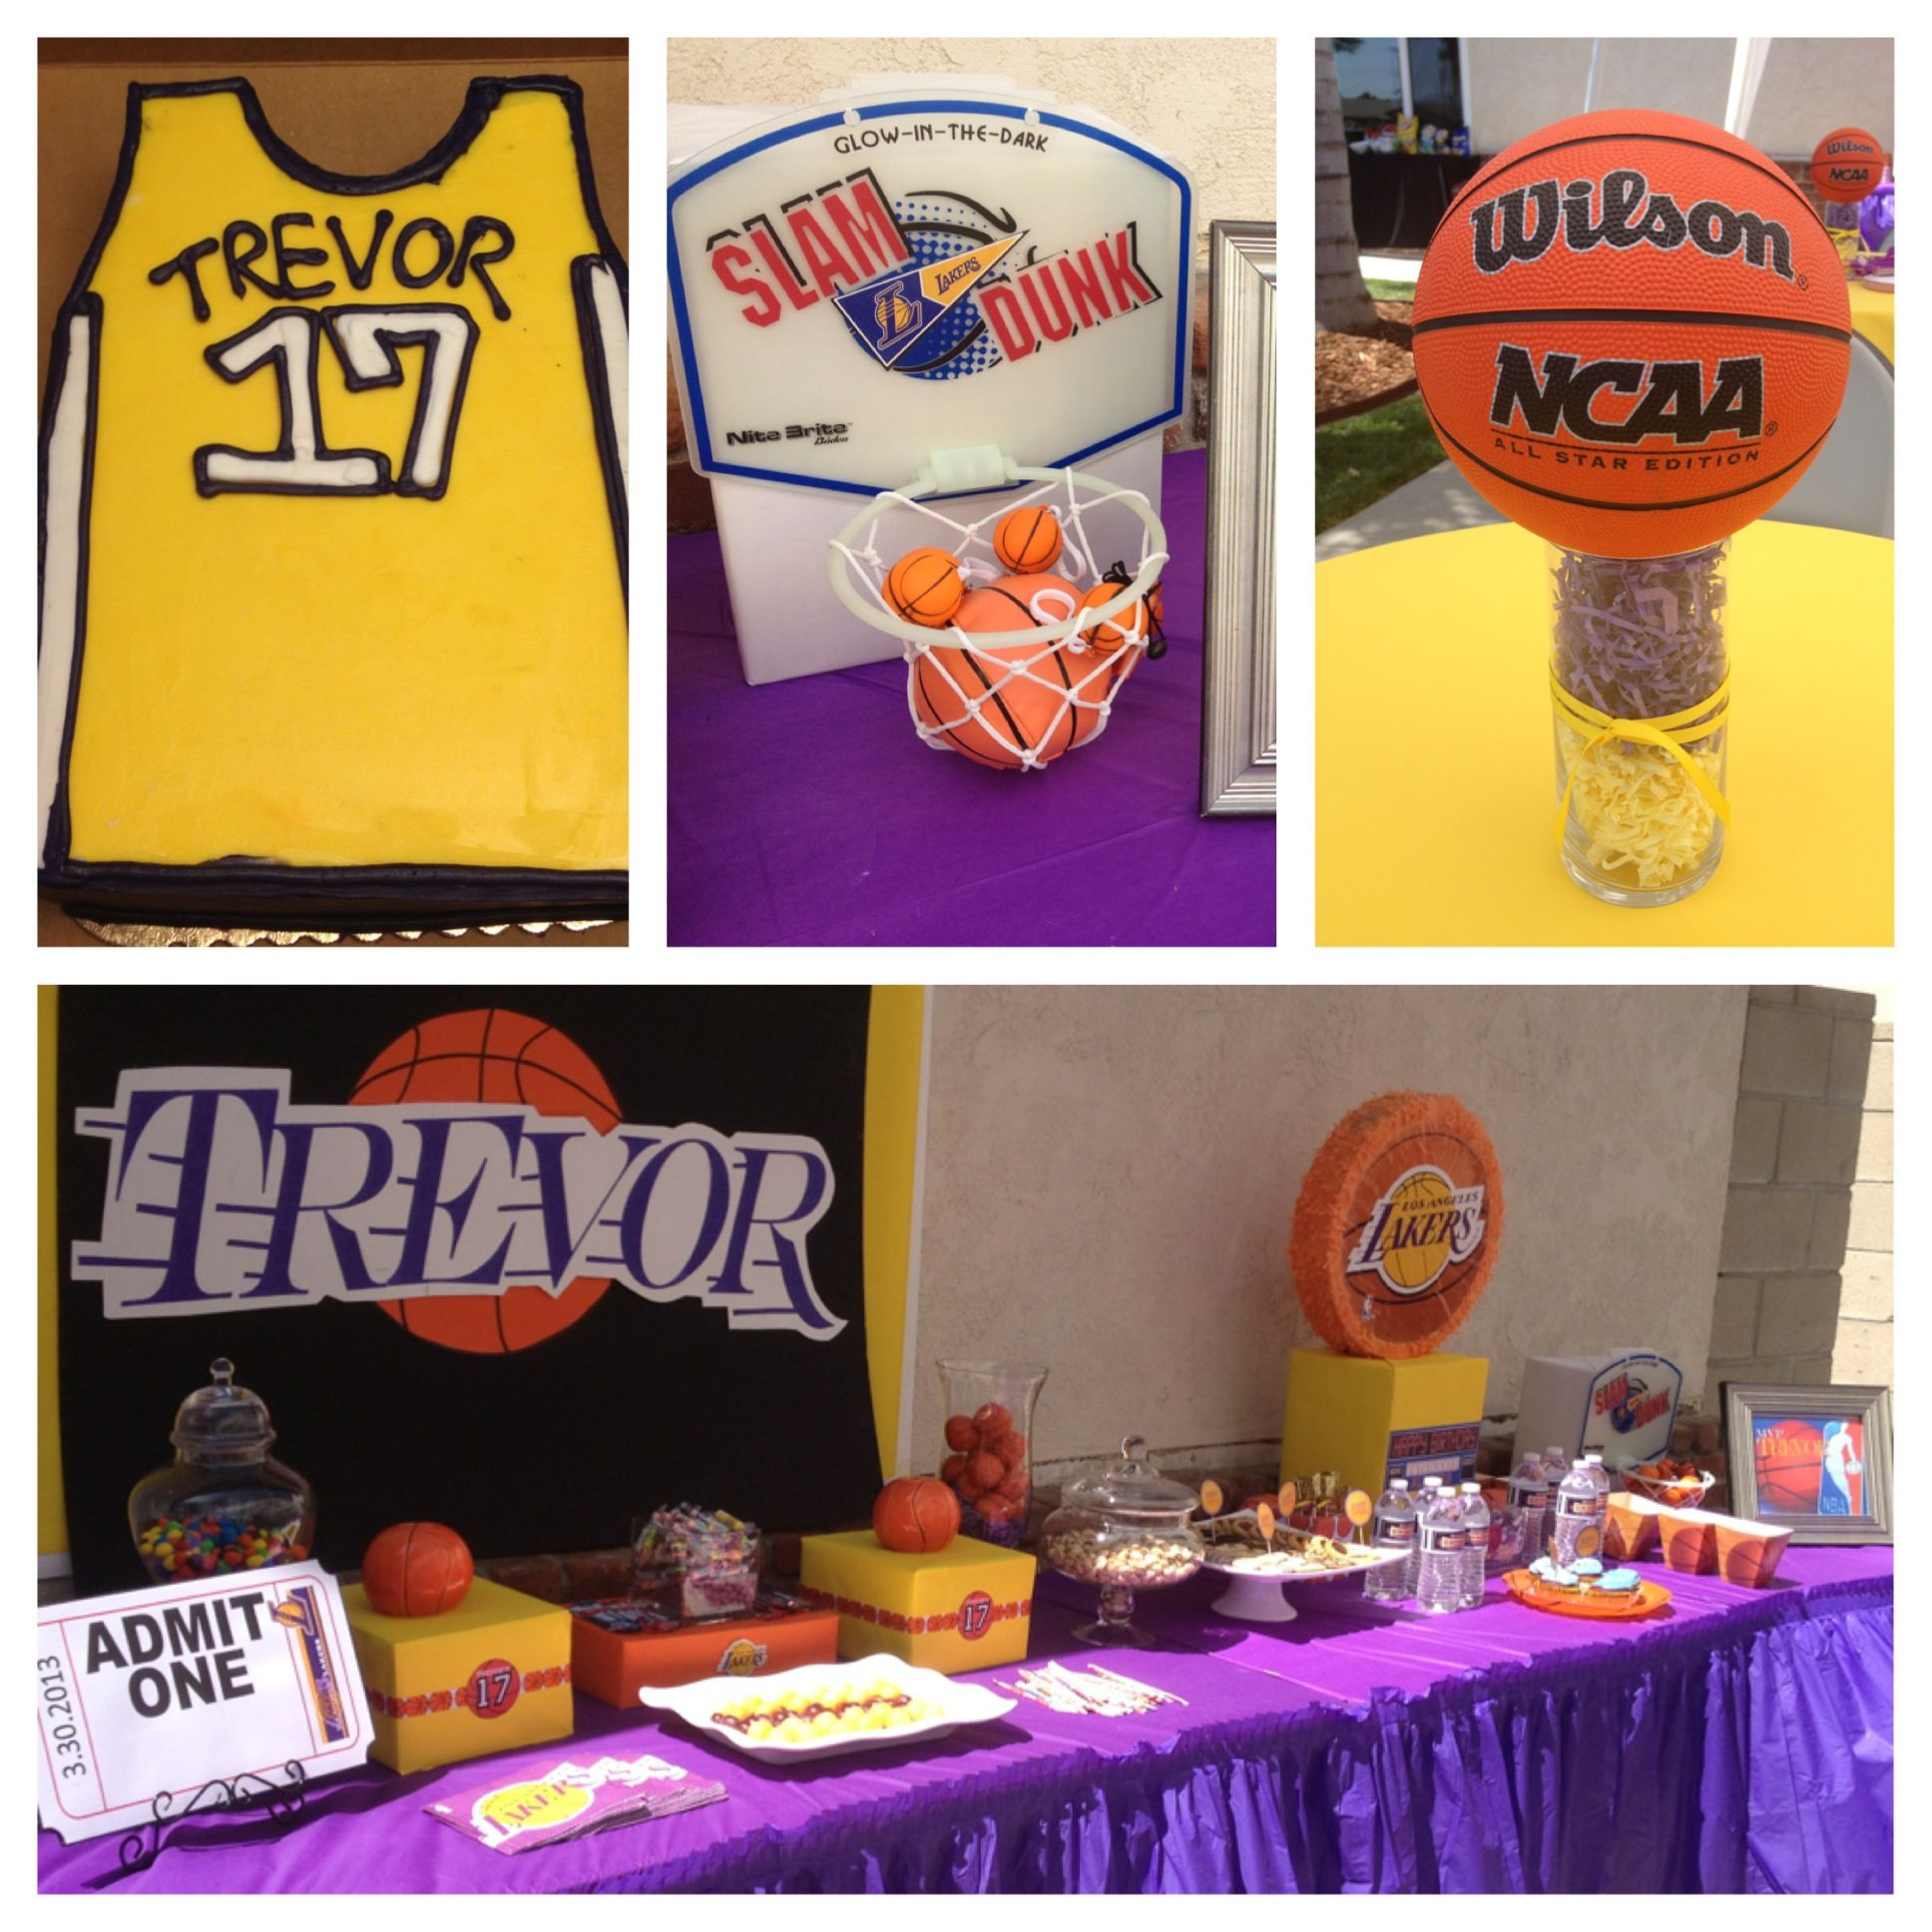 Trevor's 17th Lakers birthday party. Twin birthday